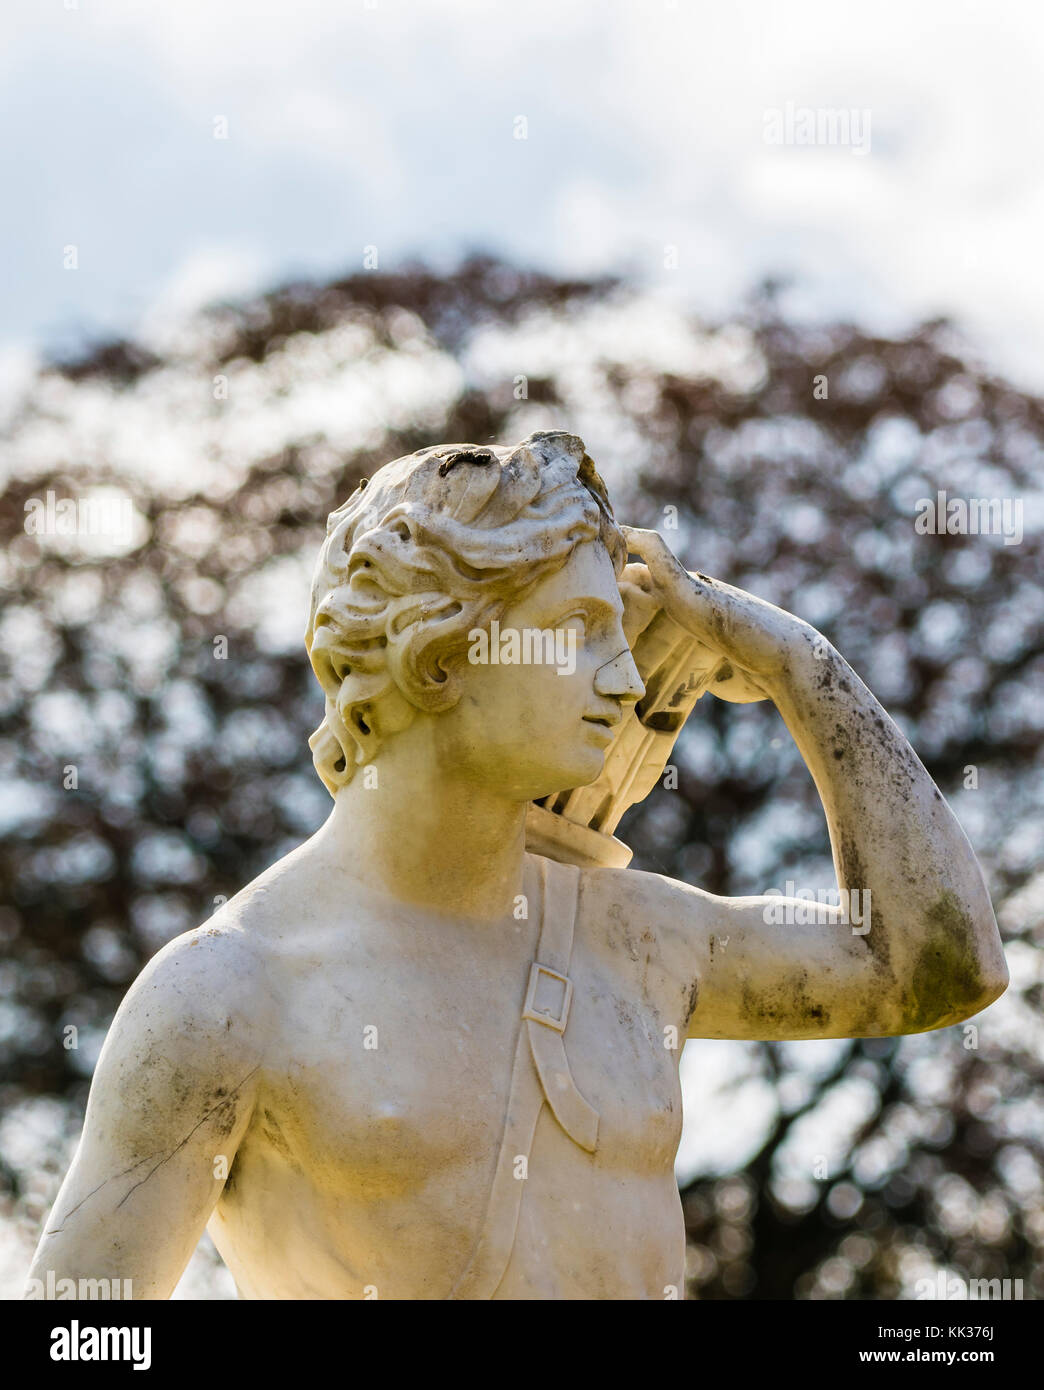 Top of a statue in the grounds at Waddesdon Manor, Buckinghamshire, UK - Stock Image